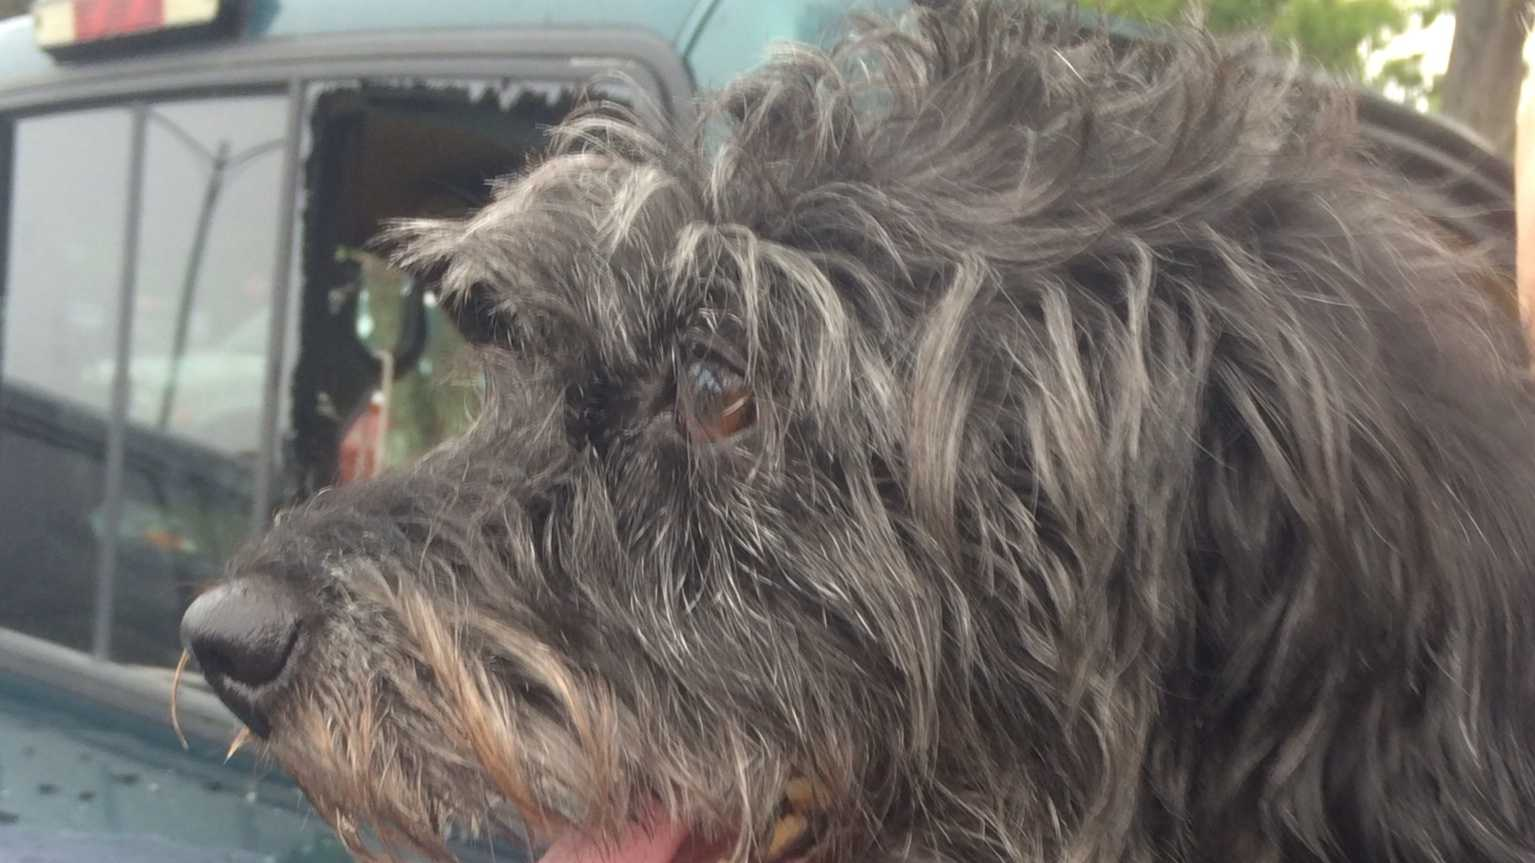 Dog left in hot truck